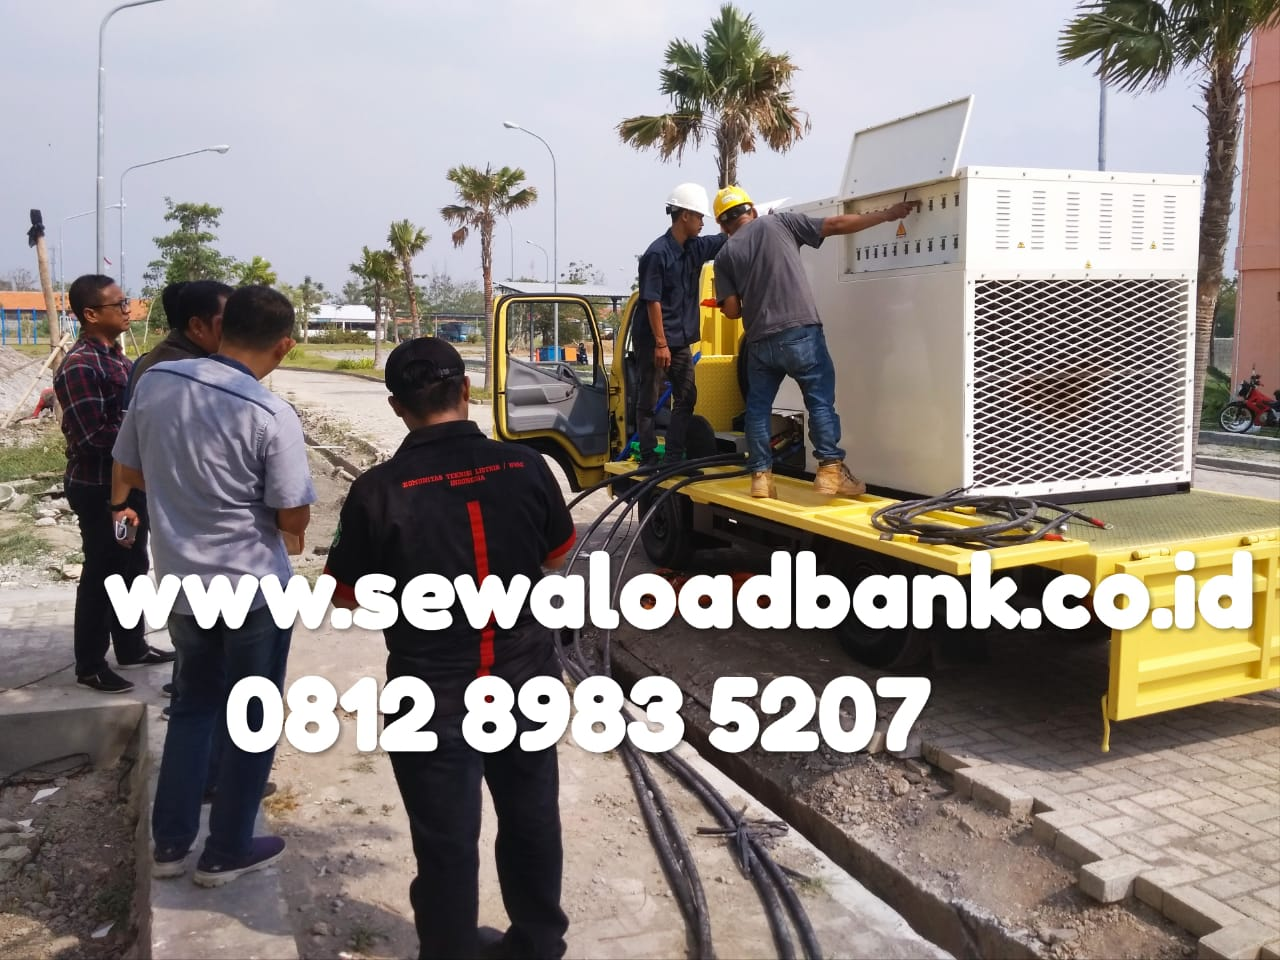 sewa load bank www.sewaloadbank.co.id